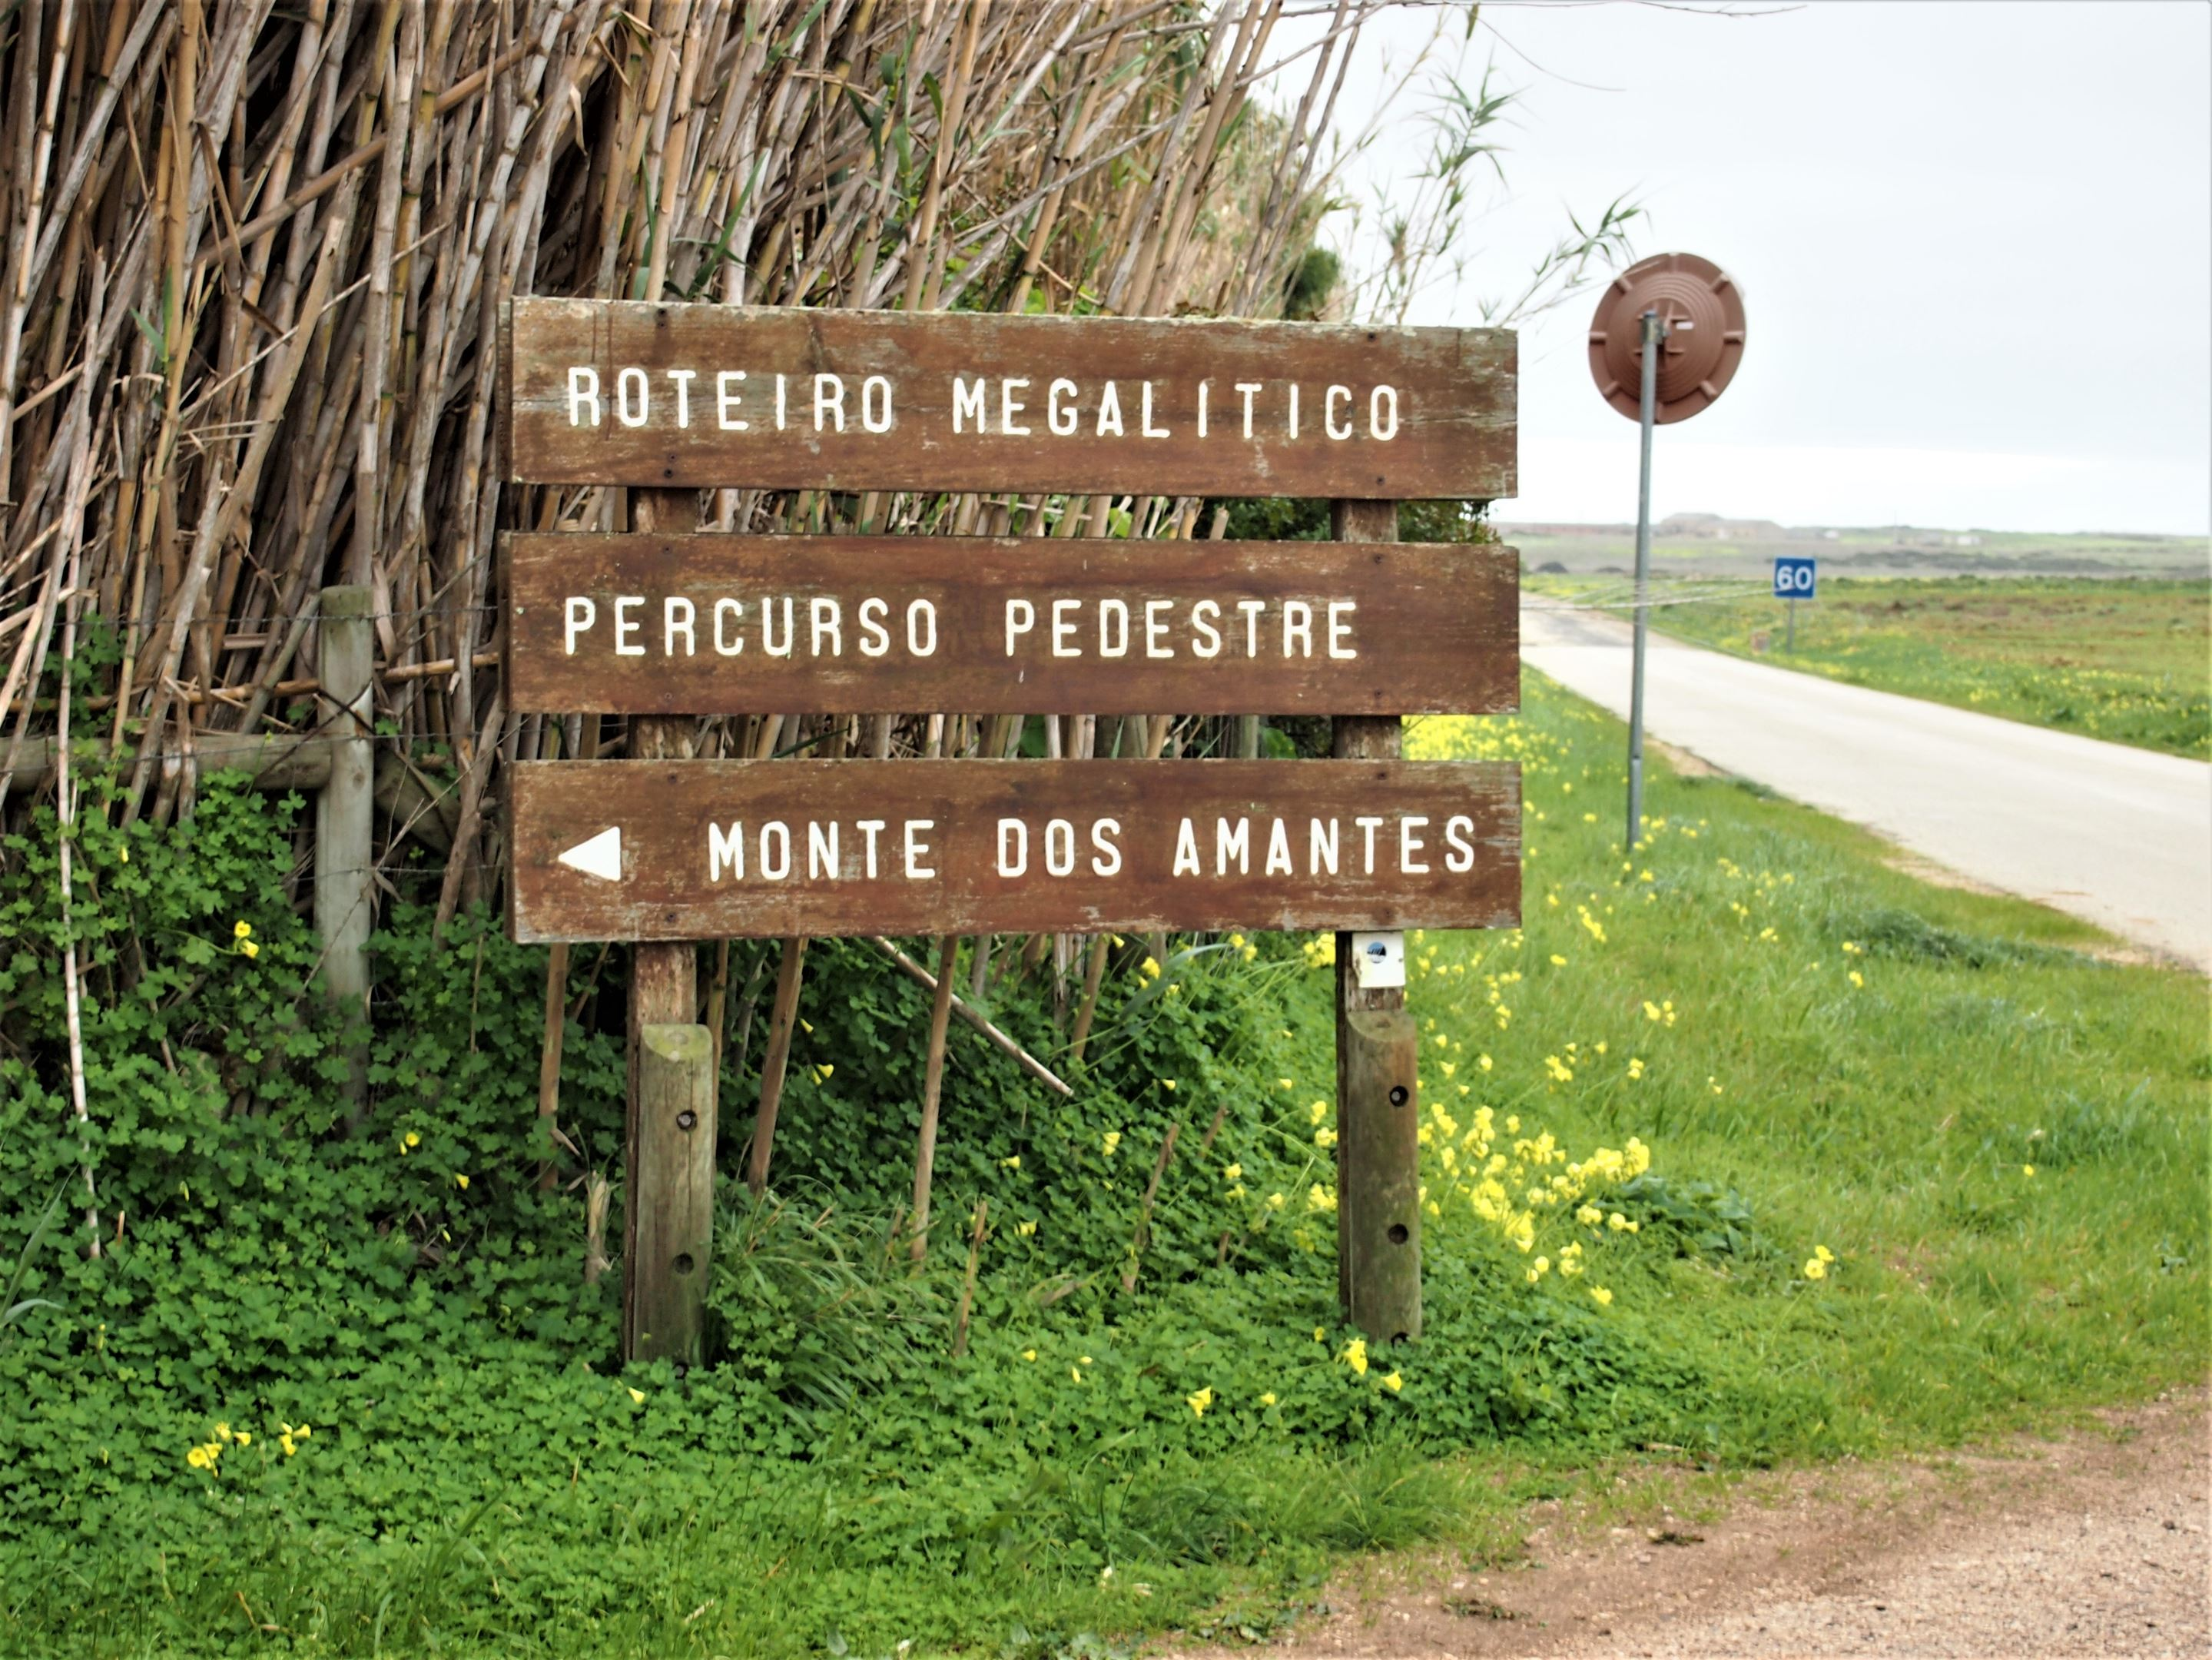 The entrance to Monte dos Amantes, a megalithic site in Vila do Bispo, west Algarve